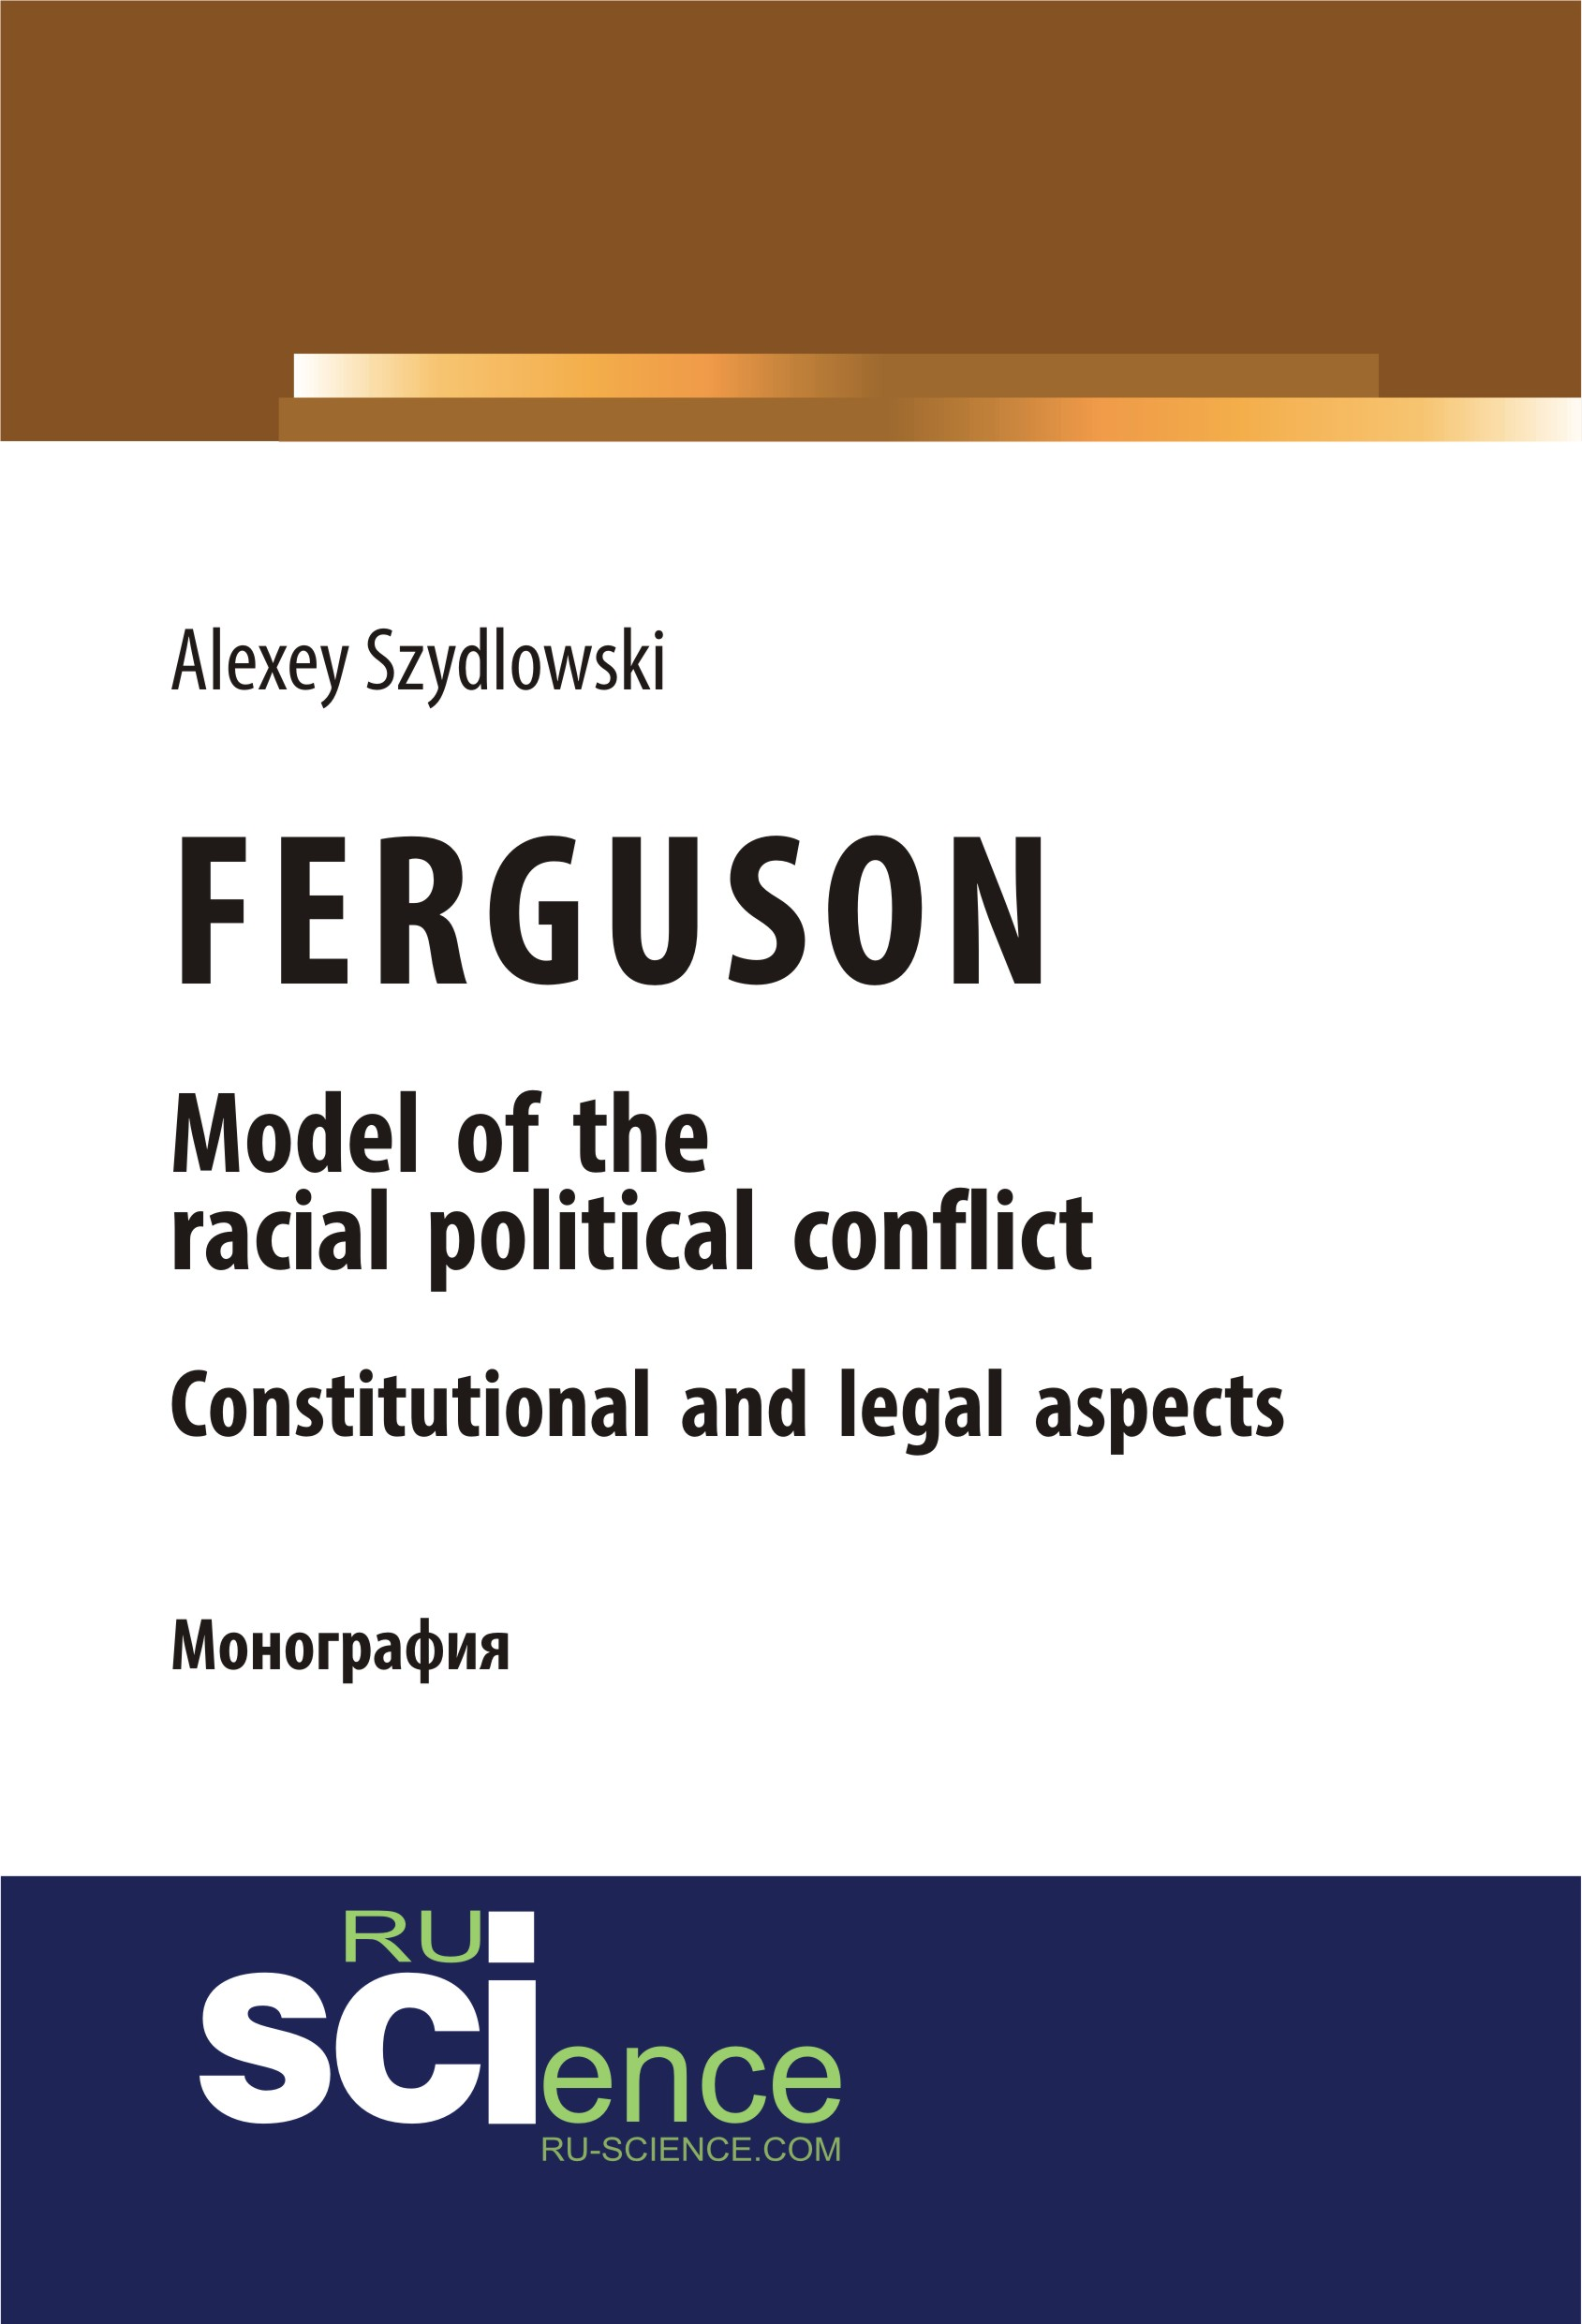 FERGUSON. Model of the racial political conflict. Constitutional and legal aspects